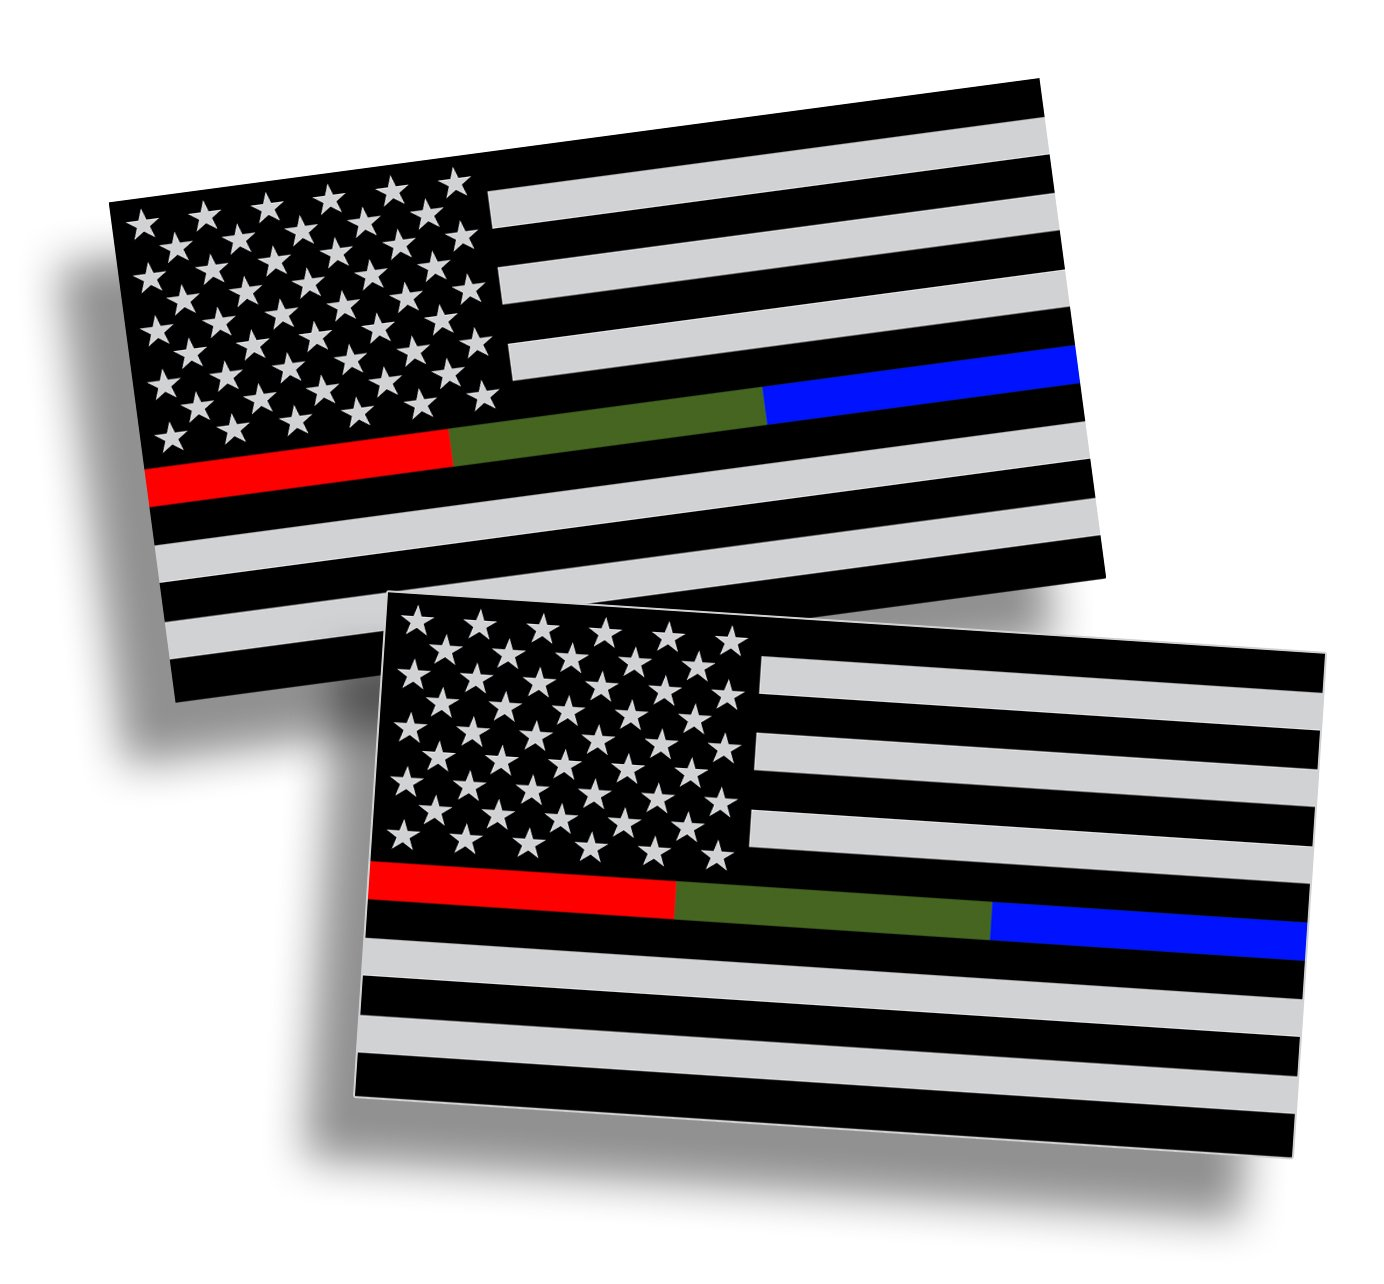 Amazon com police military and fire thin line usa flag american flag sticker blue green and red stripe for cars trucks cups laptops vinyl window bumper